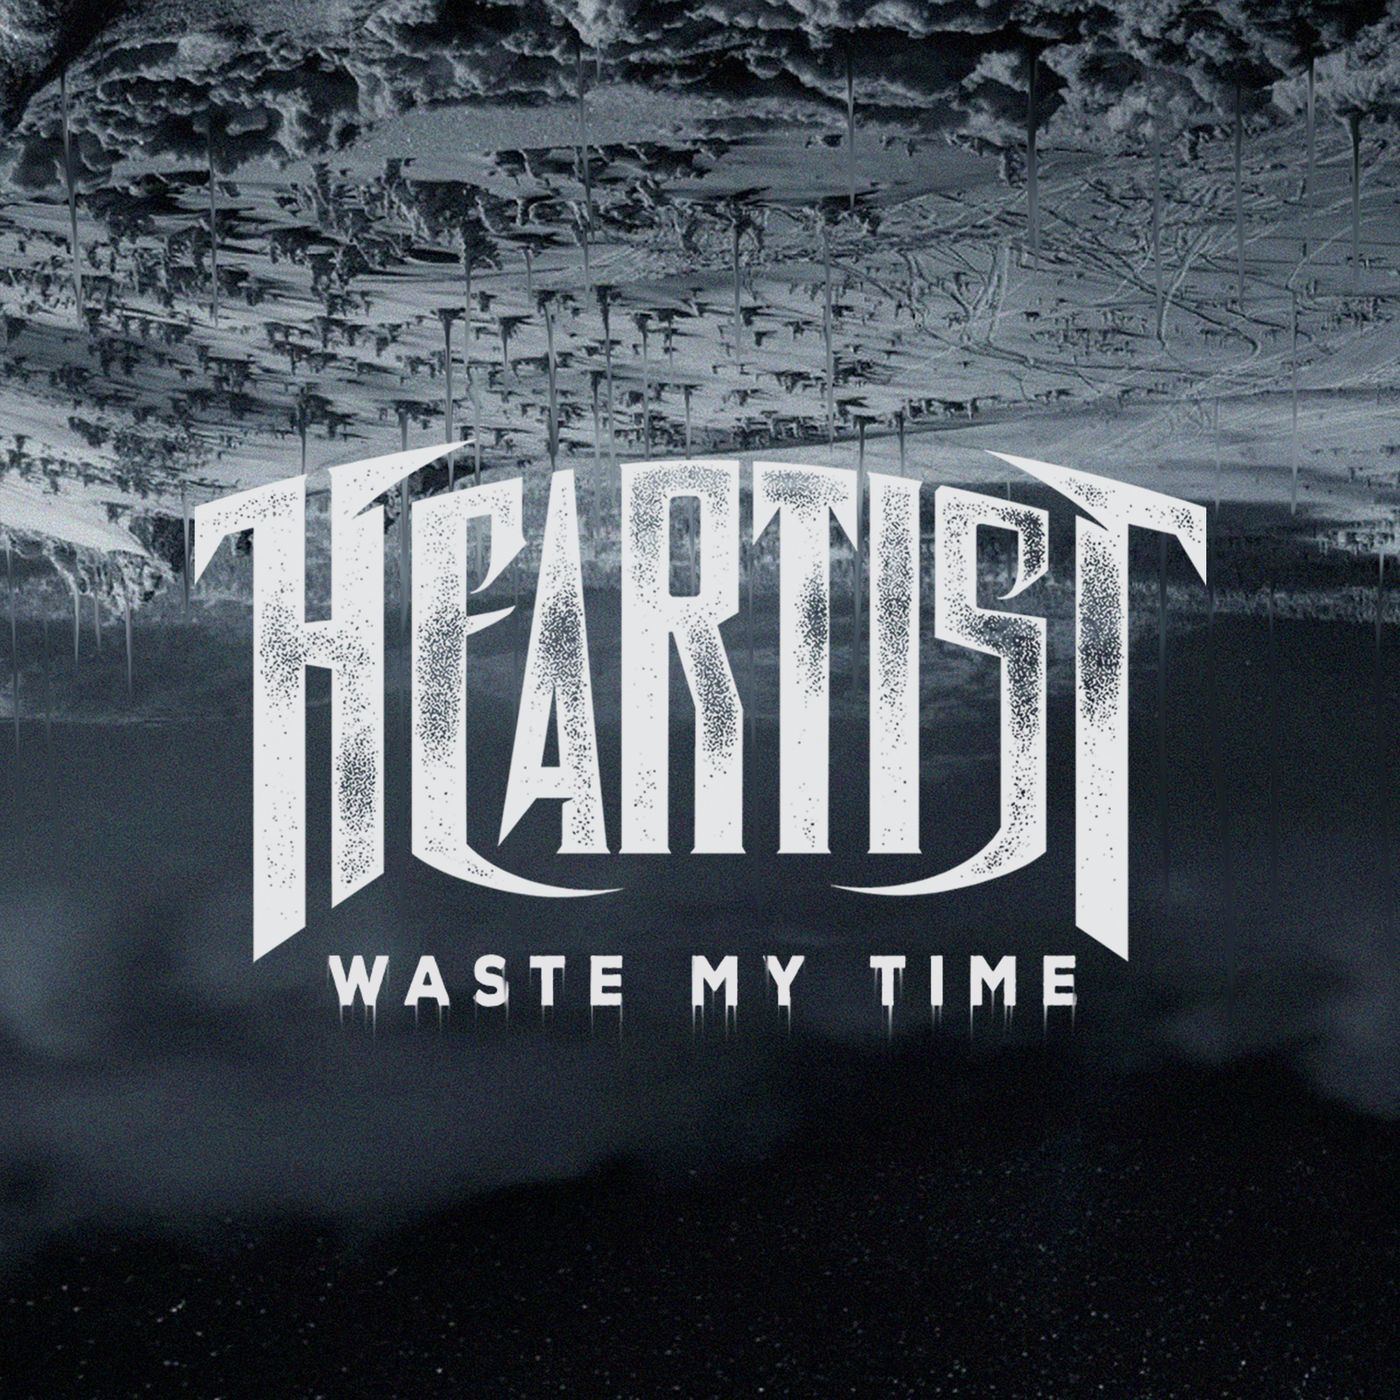 Heartist - Waste My Time (Single) (2019)